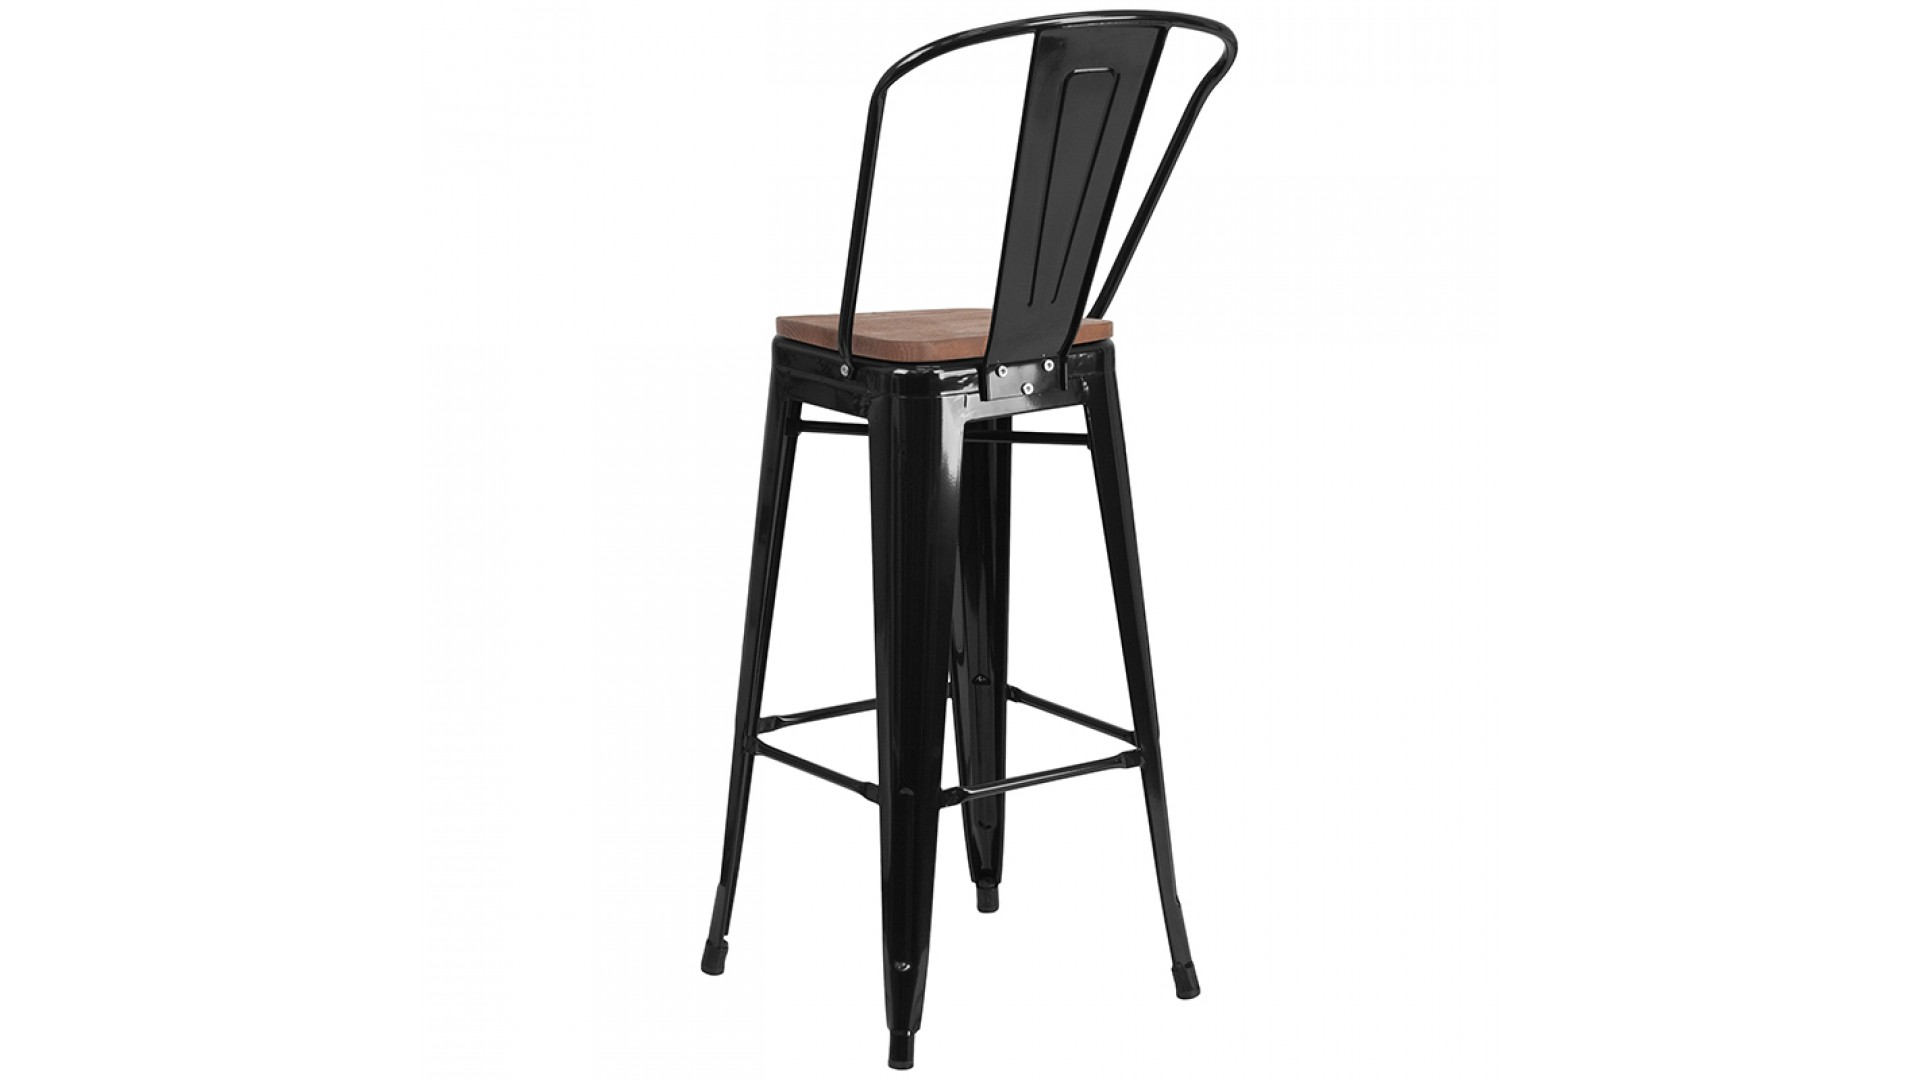 Astonishing 30 Inch Metal Bar Stool With Wood Seat Black Machost Co Dining Chair Design Ideas Machostcouk